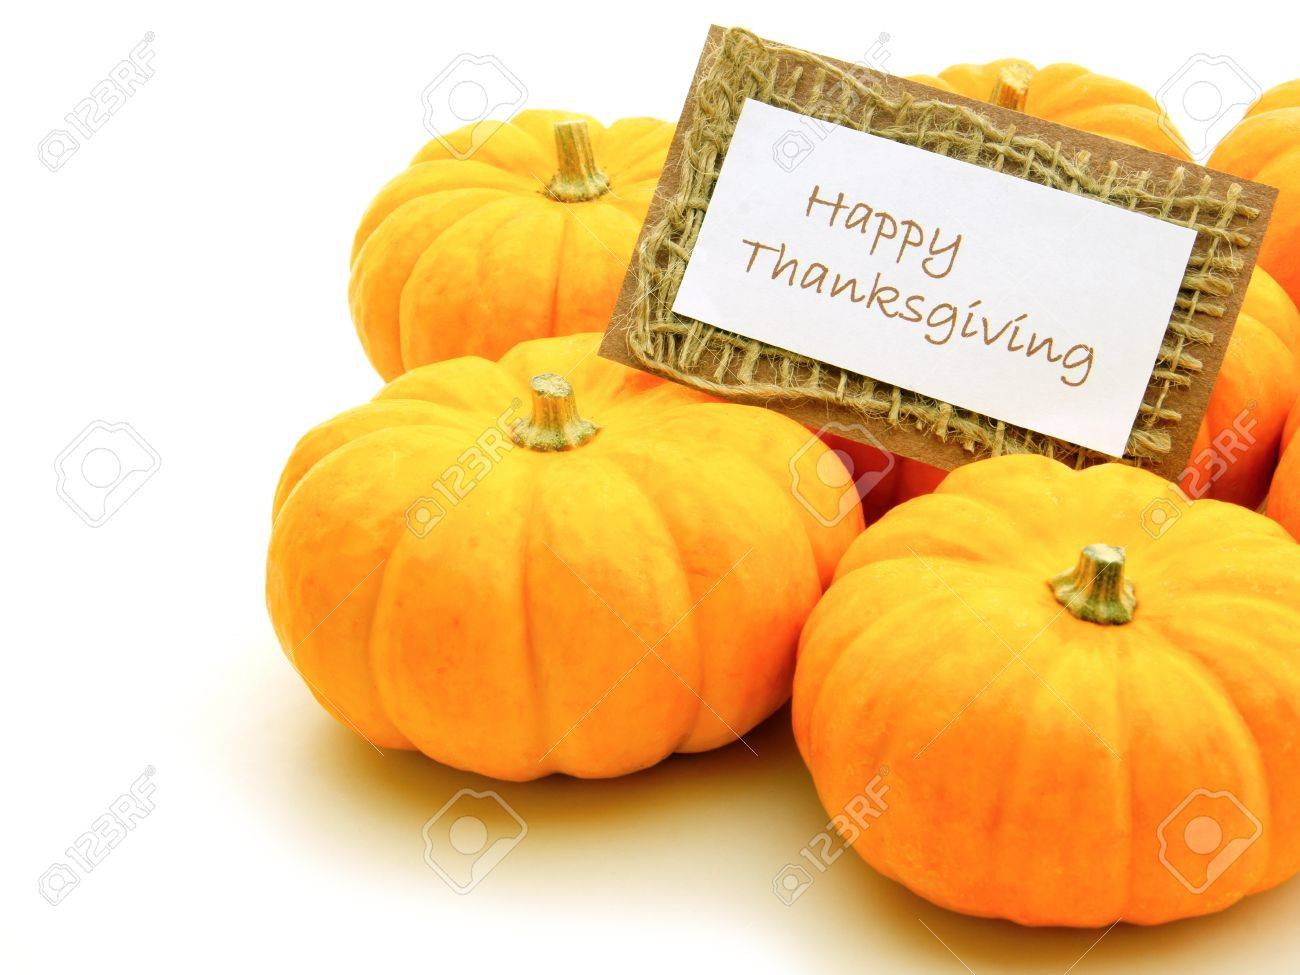 Group of pumpkins with Happy Thanksgiving card over white Stock Photo - 15460342